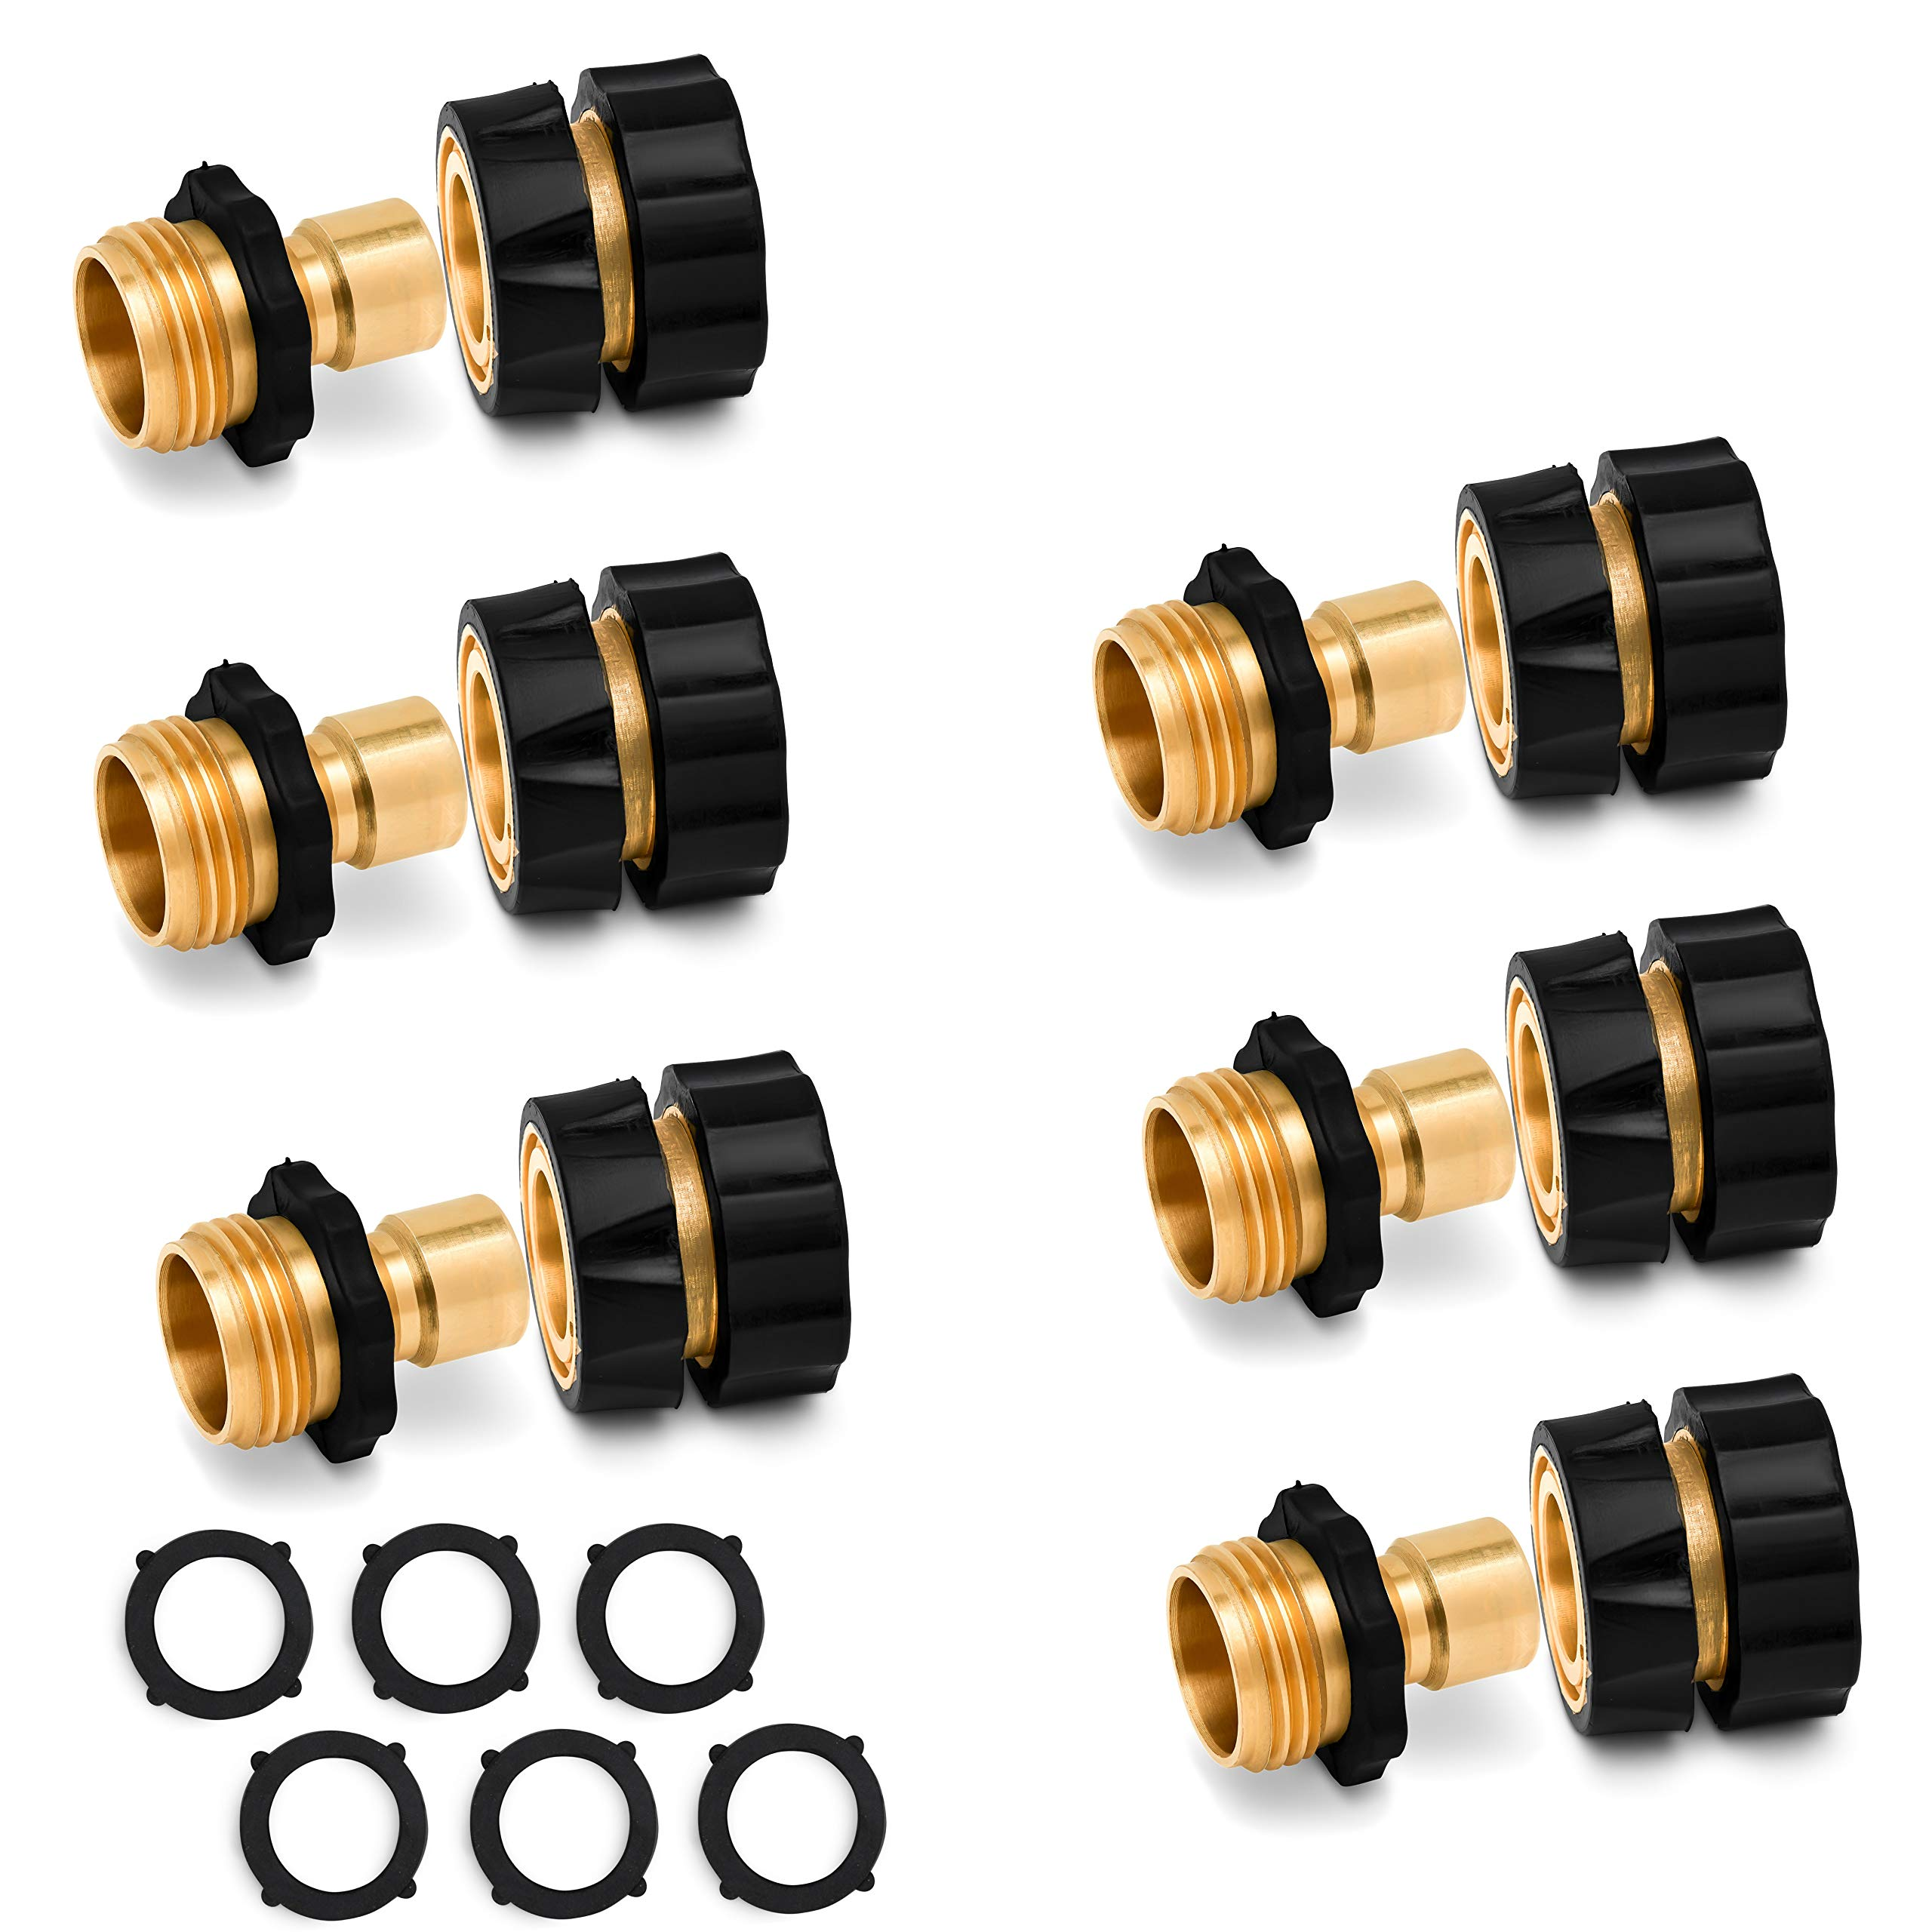 Morvat Brass Quick Hose Connector | Easily Add Attachments to Garden Hose | Great for Gardening, Washing, Sprayers, Nozzles, Sprinkler or Watering Tools | Pack of 6